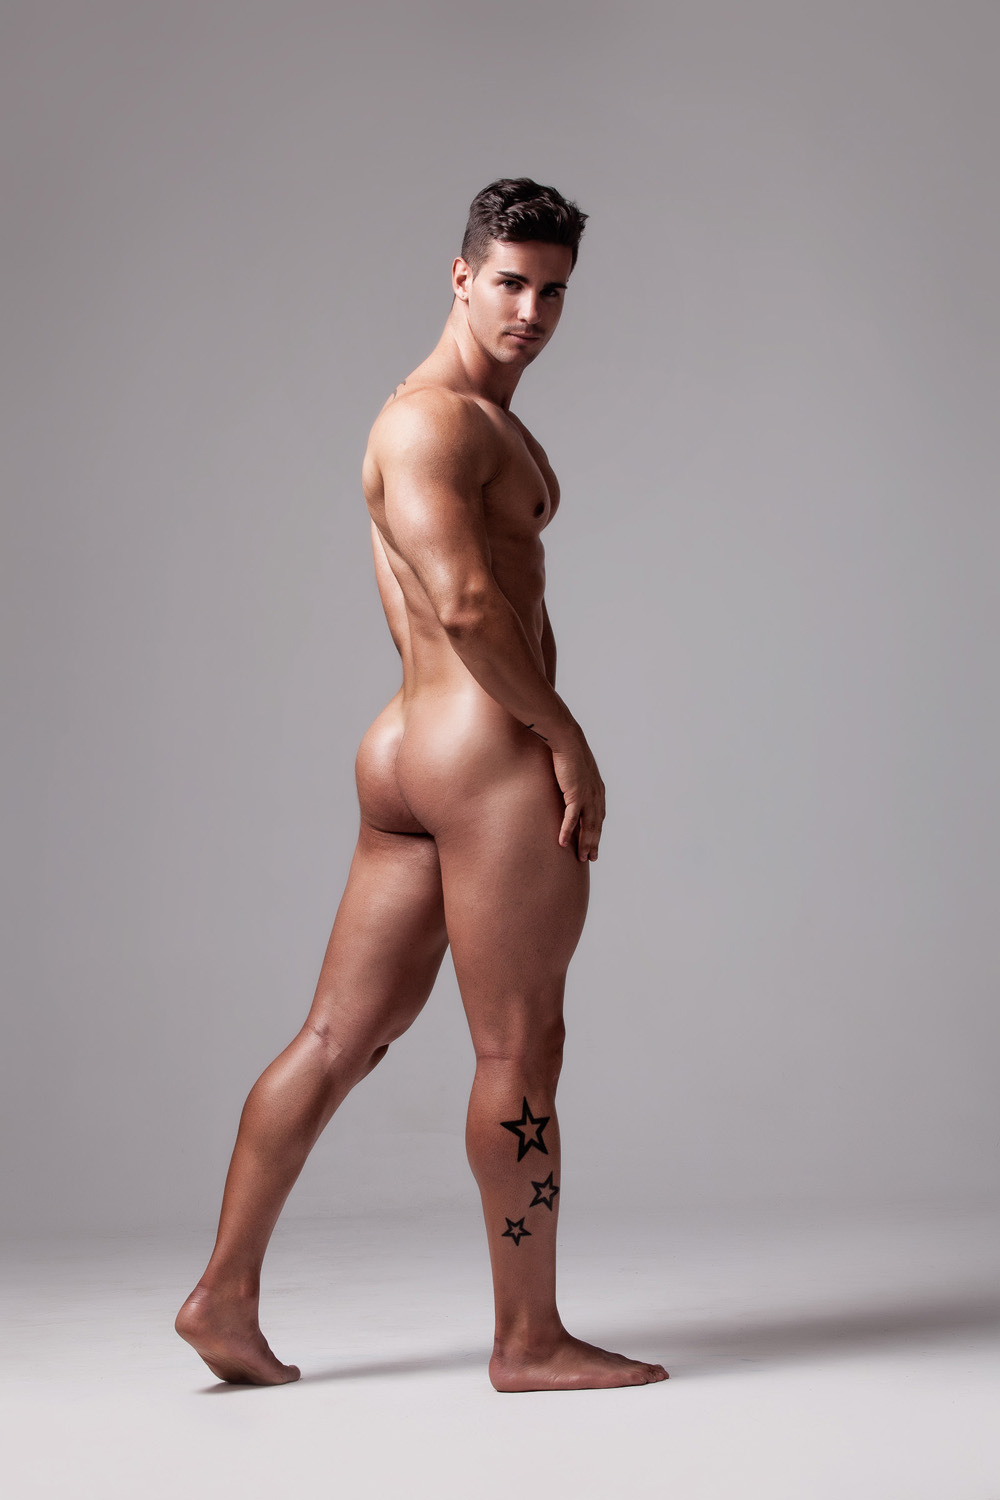 hot nude pictures of male models in germany